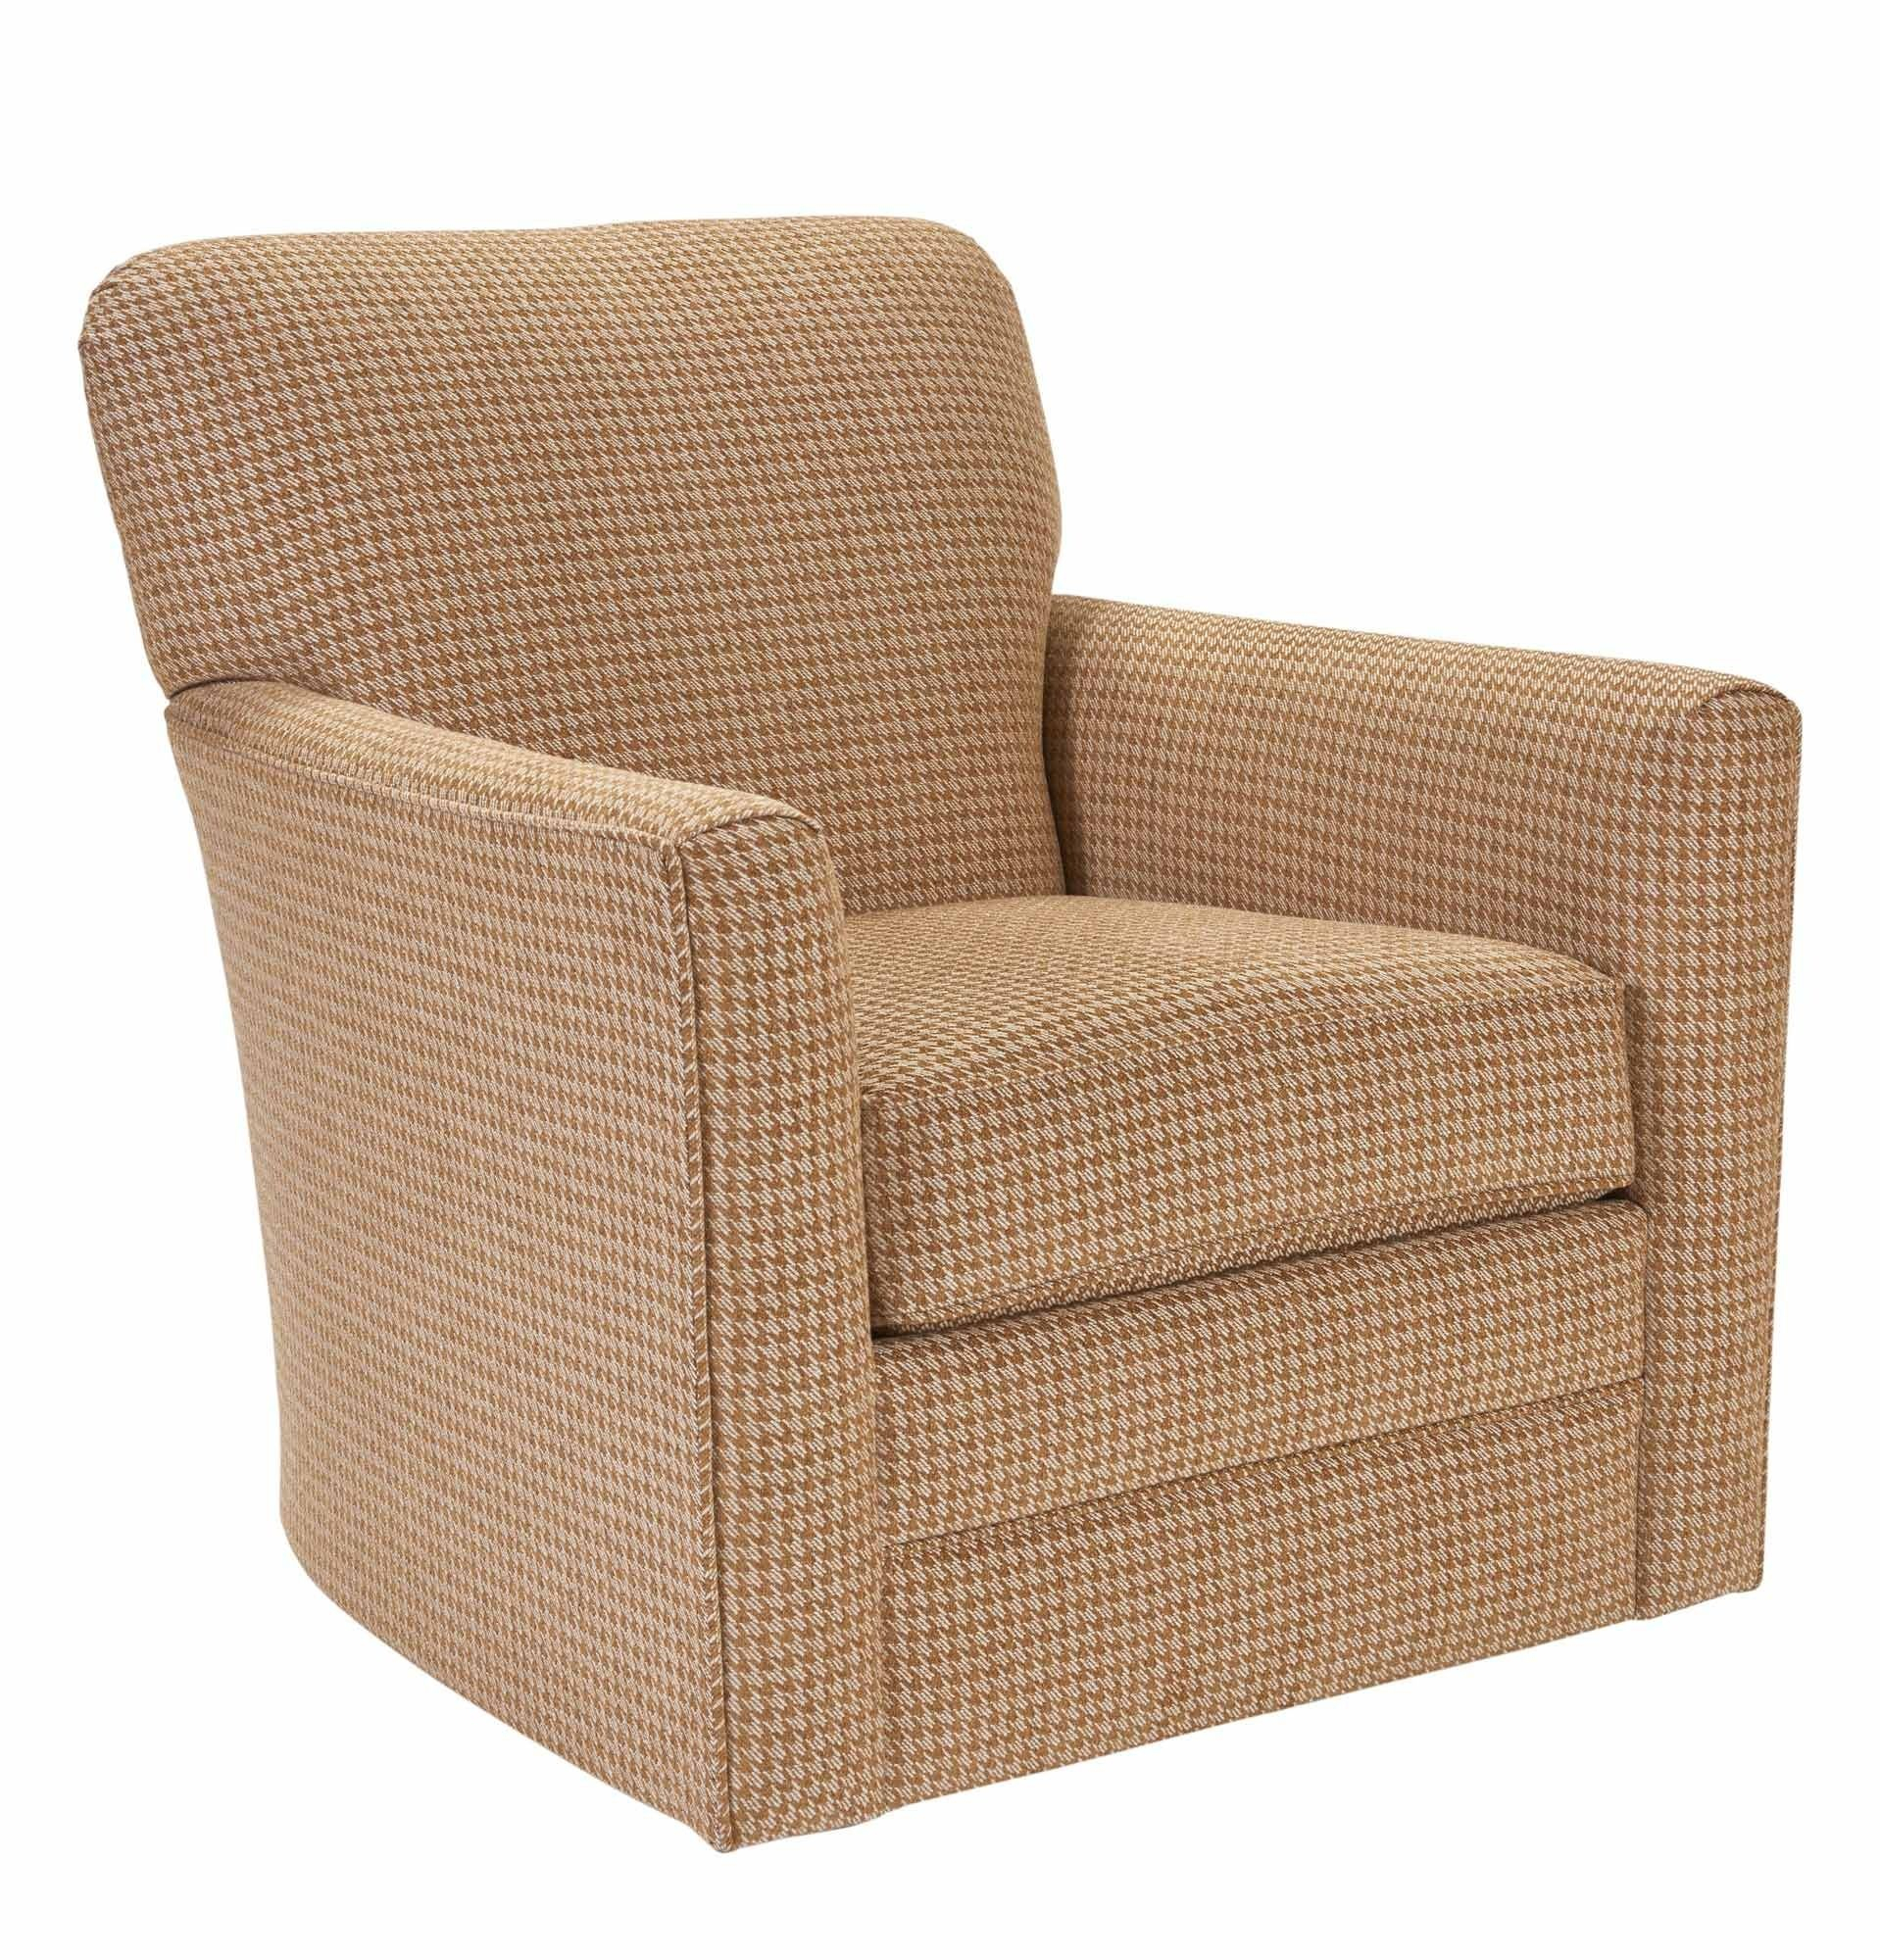 Becks Swivel Chair | Broyhill | Home Gallery Stores | Chair Pertaining To Riverside Drive Barrel Chair And Ottoman Sets (View 15 of 15)